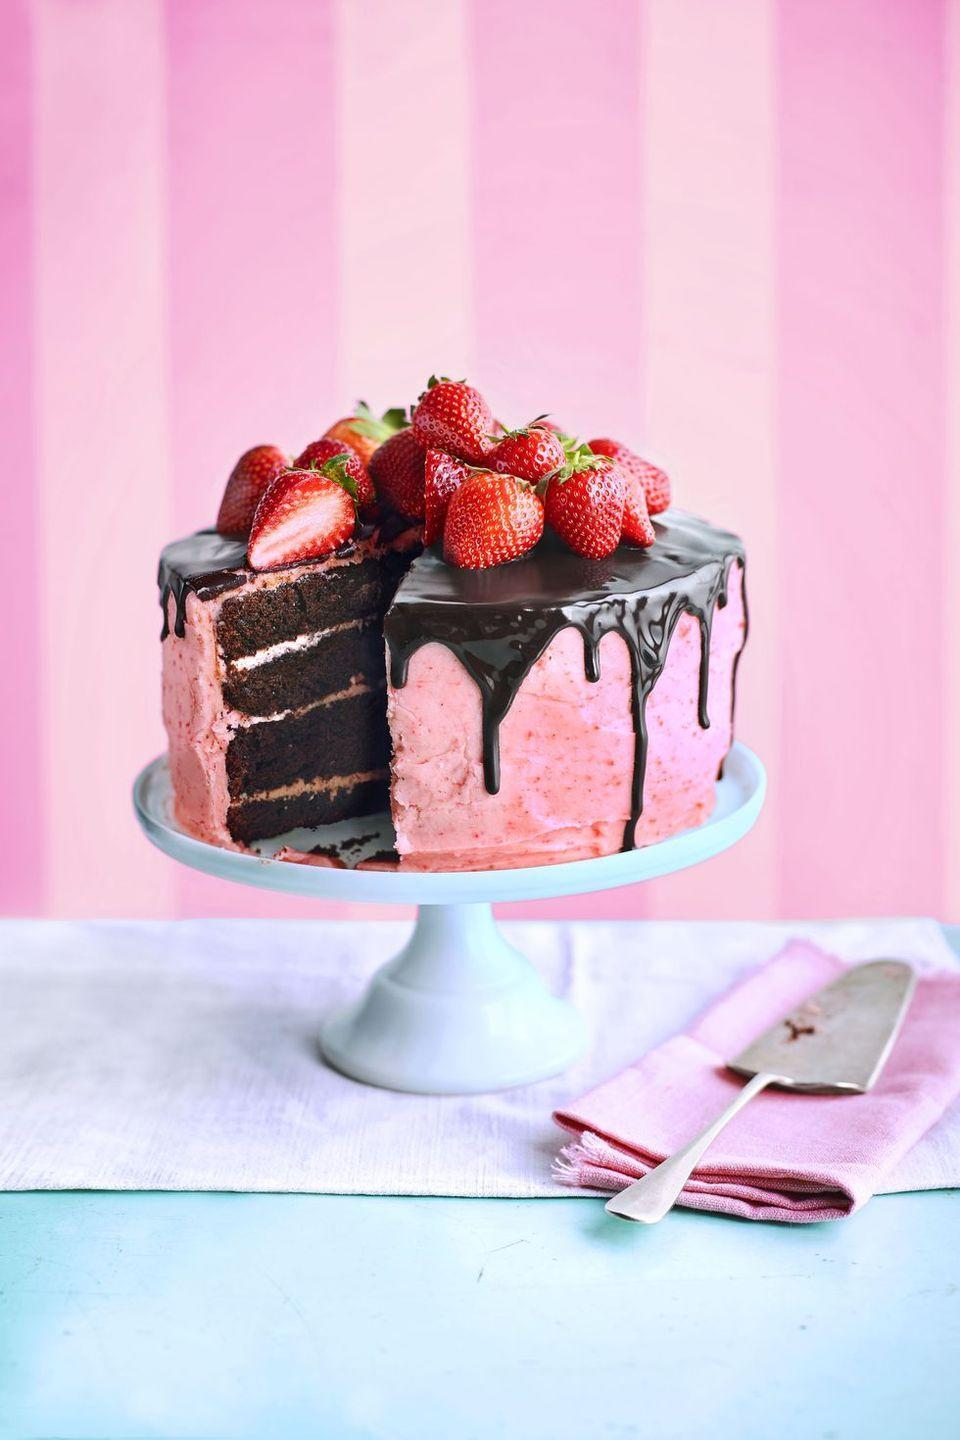 """<p>This whimsical and elegant cake would impress just about anyone, and the gorgeous chocolate details just scream """"party."""" </p><p><em><strong><a href=""""https://www.womansday.com/food-recipes/a36502165/choco-berry-surprise-cake-recipe/"""" rel=""""nofollow noopener"""" target=""""_blank"""" data-ylk=""""slk:Get the Best Choco-Berry Surprise Cake recipe"""" class=""""link rapid-noclick-resp"""">Get the Best Choco-Berry Surprise Cake recipe</a>.</strong></em></p>"""